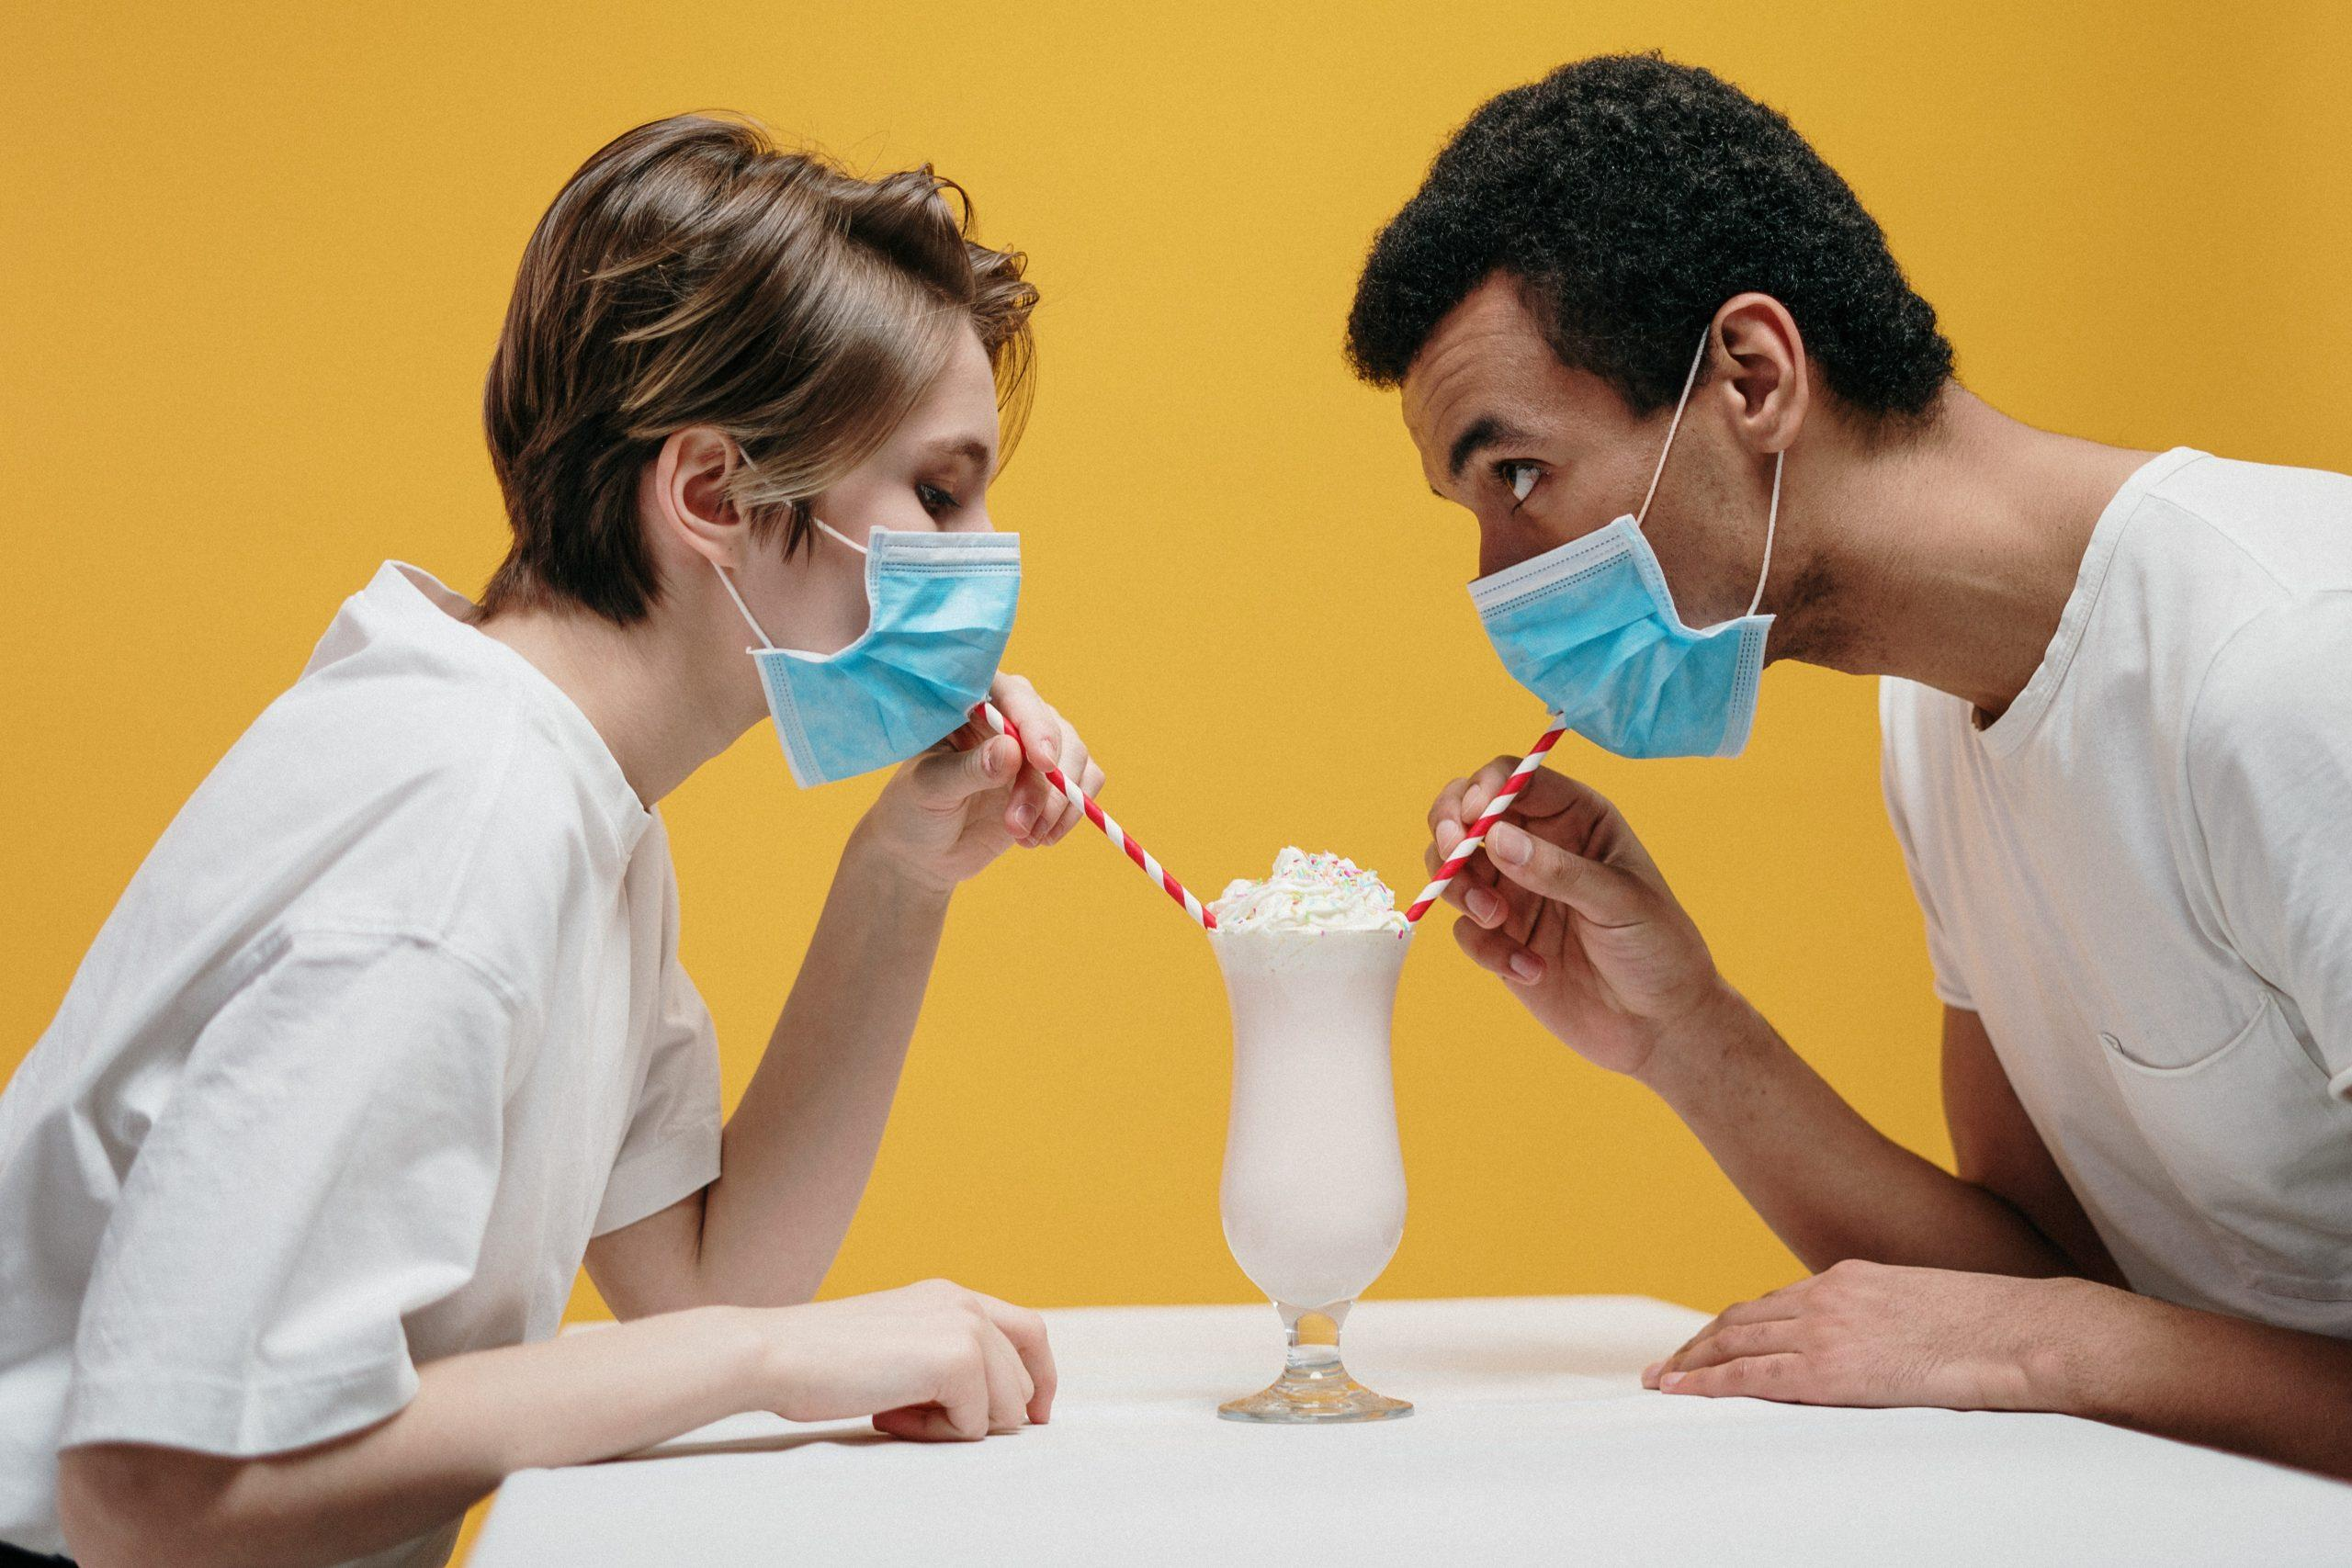 coronavirus how to self-isolate with your partner without damaging your relationship